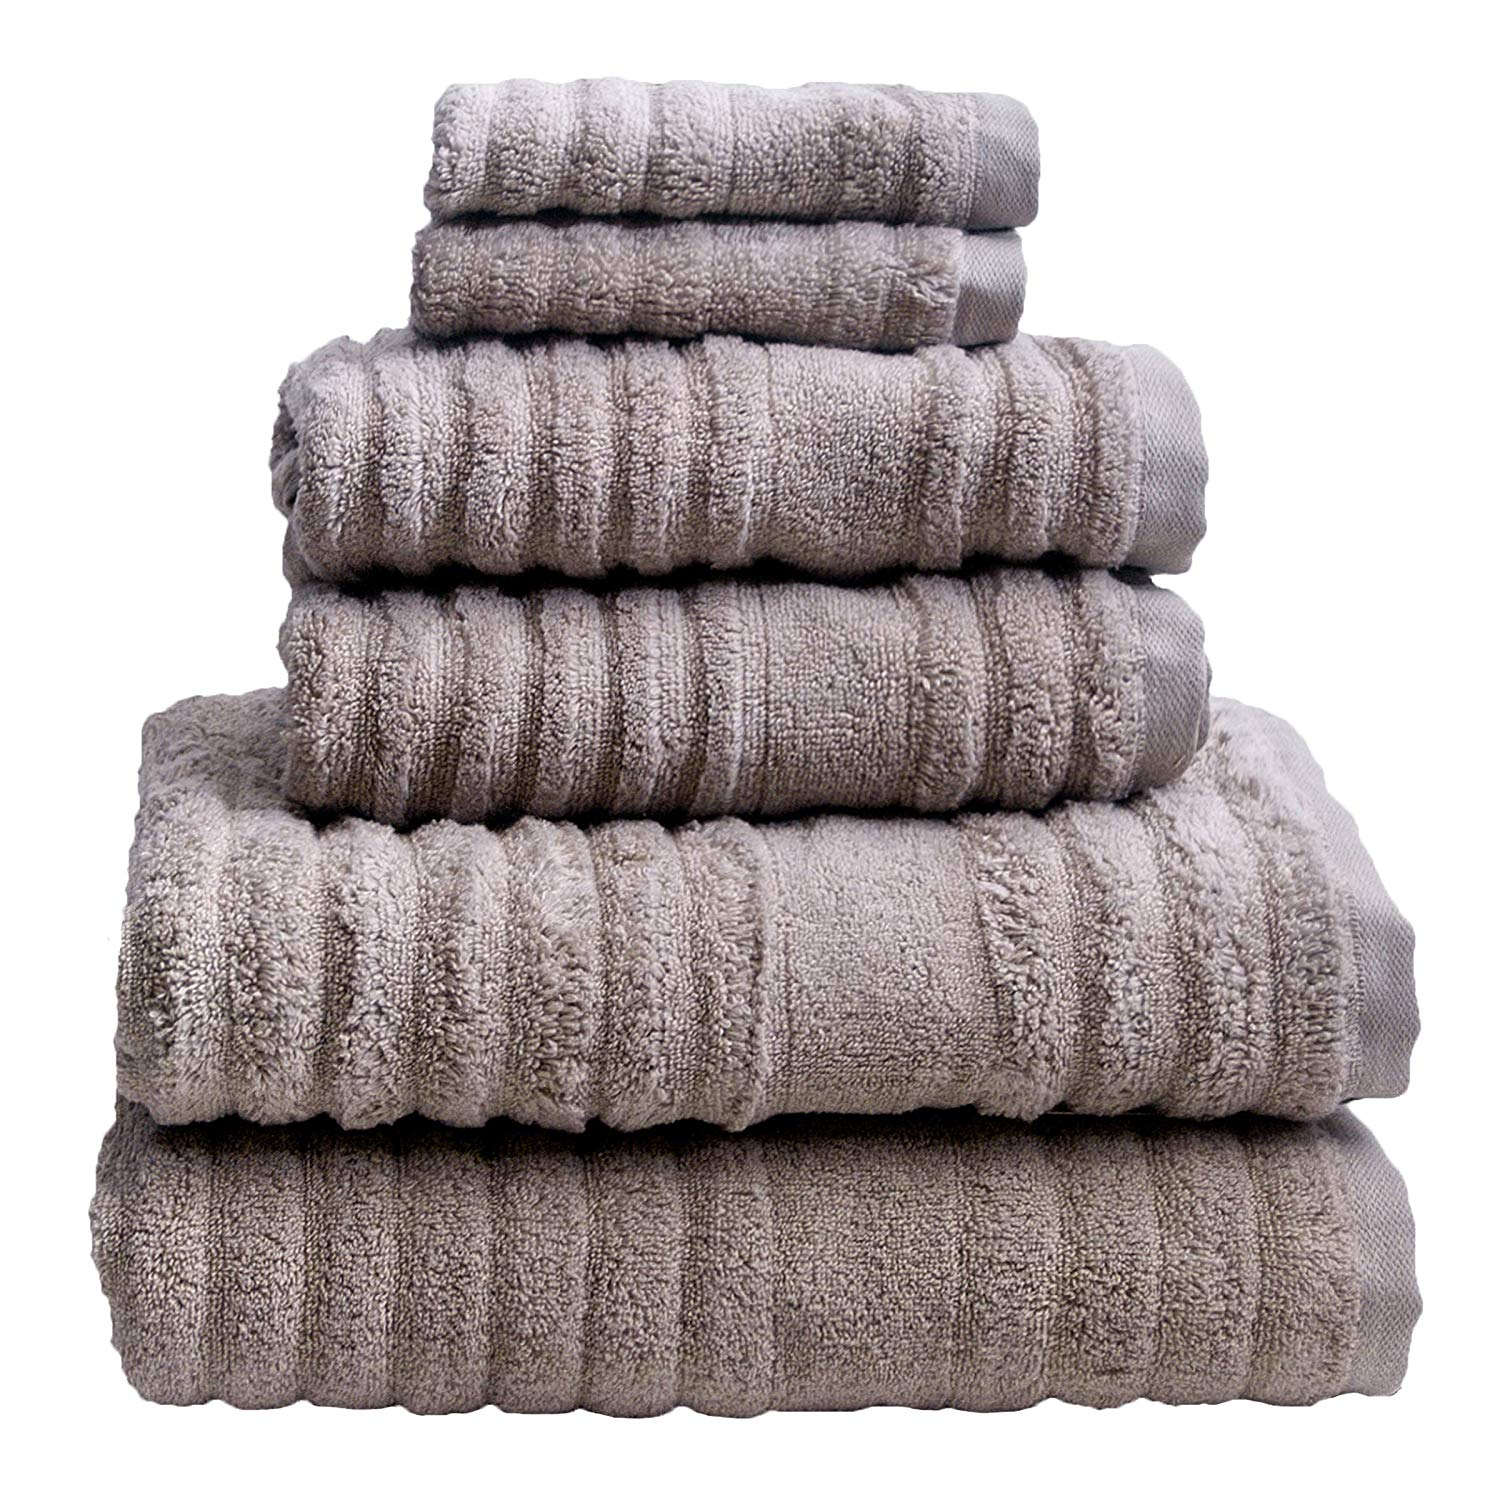 100/%Cotton 13 x 30 Set of 2 Luxury Fade Resistant Hand Towels Taupe//Brown